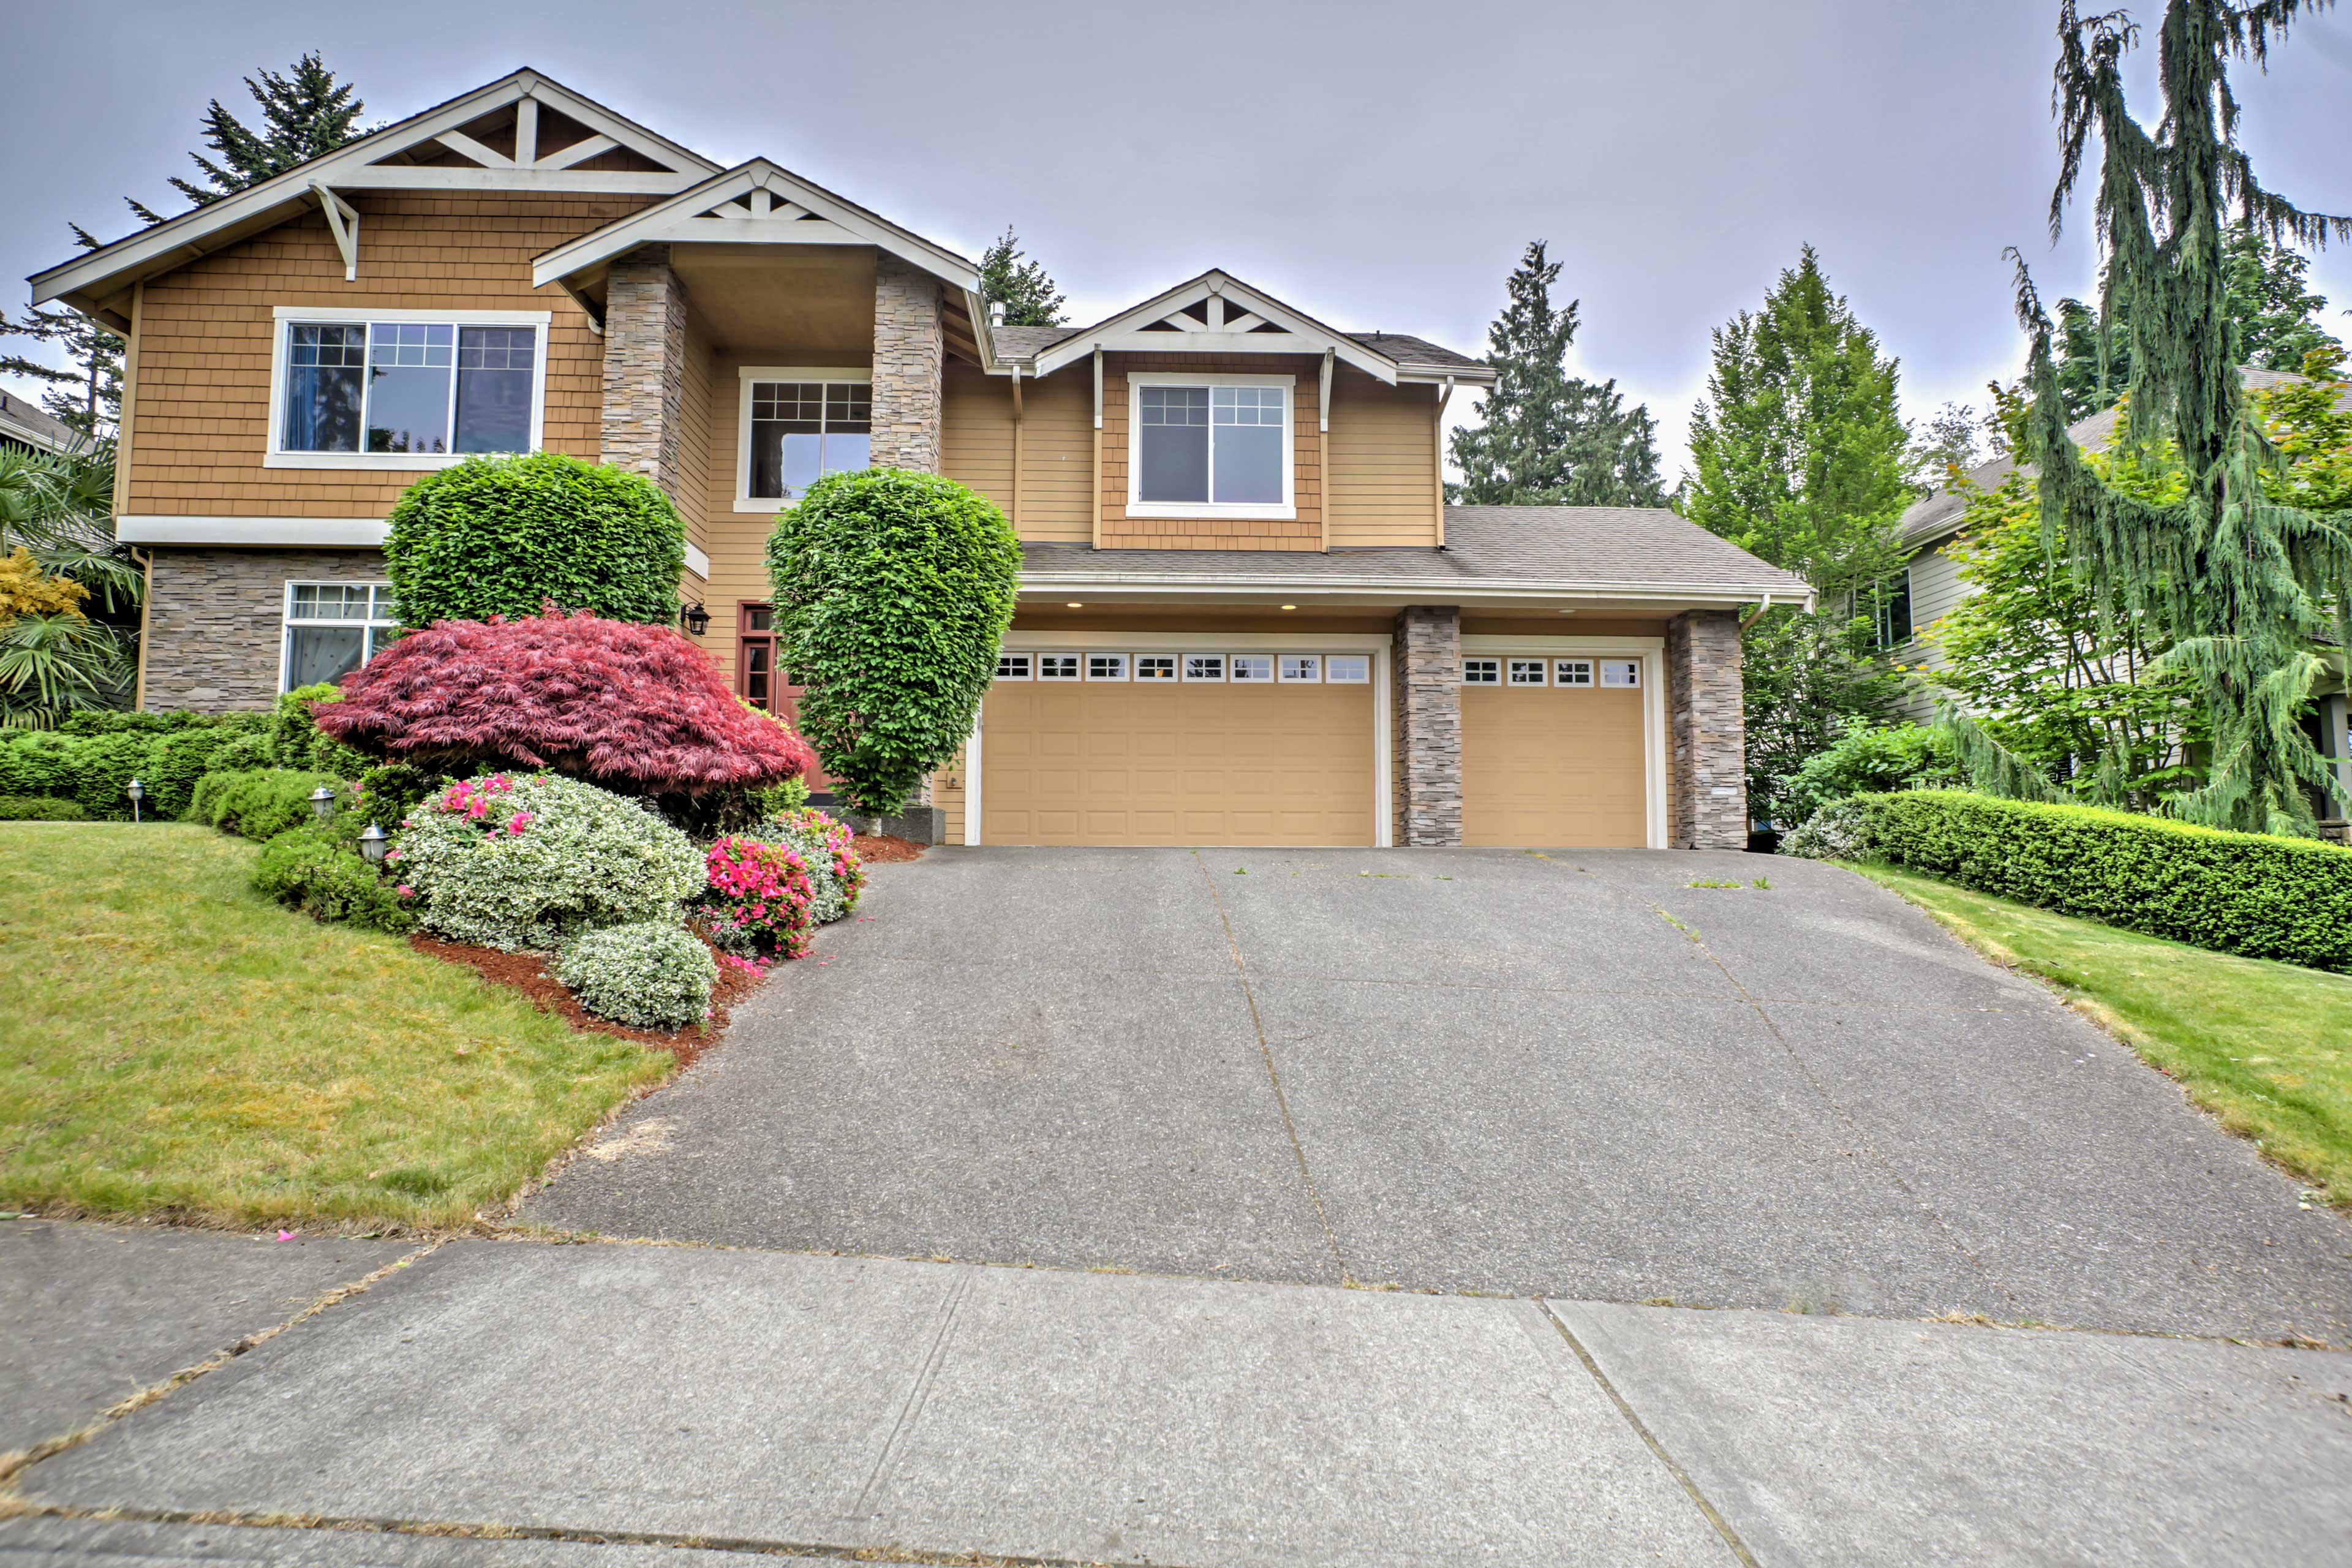 Tour the waterfront city of Kirkland from this vacation rental house.